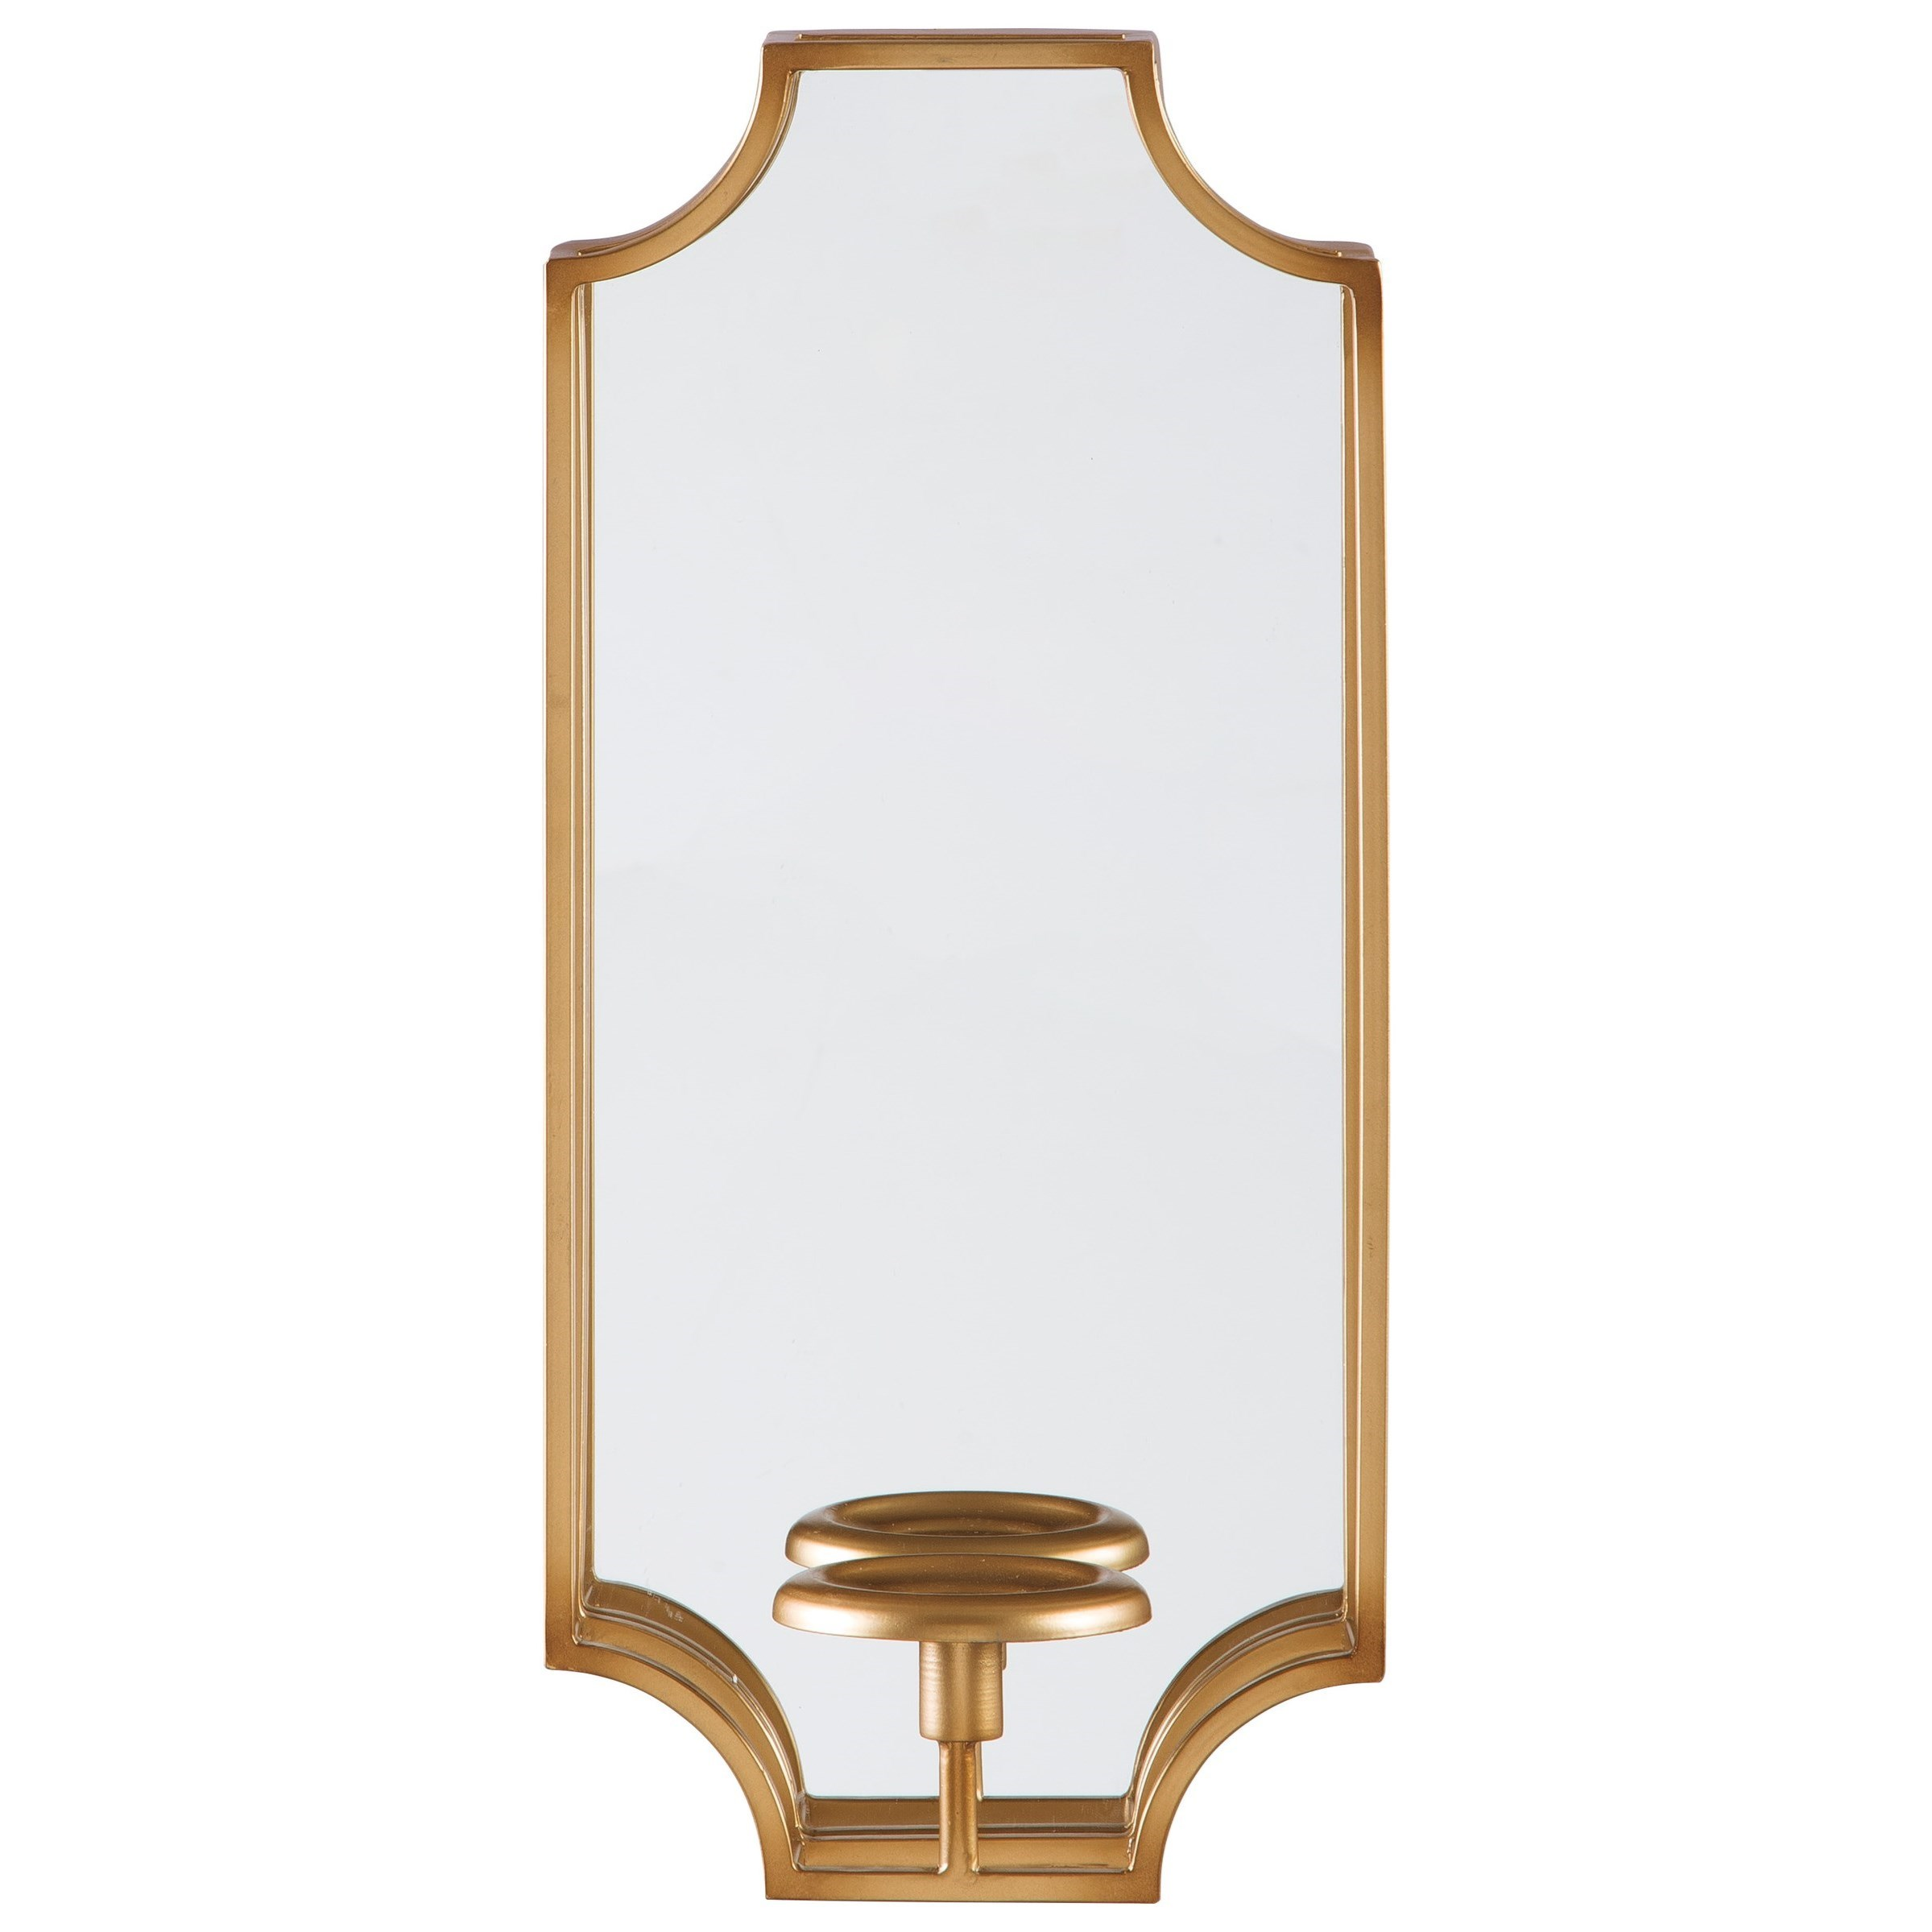 Accent Mirrors Dumi Gold Finish Wall Sconce by Benchcraft at Virginia Furniture Market